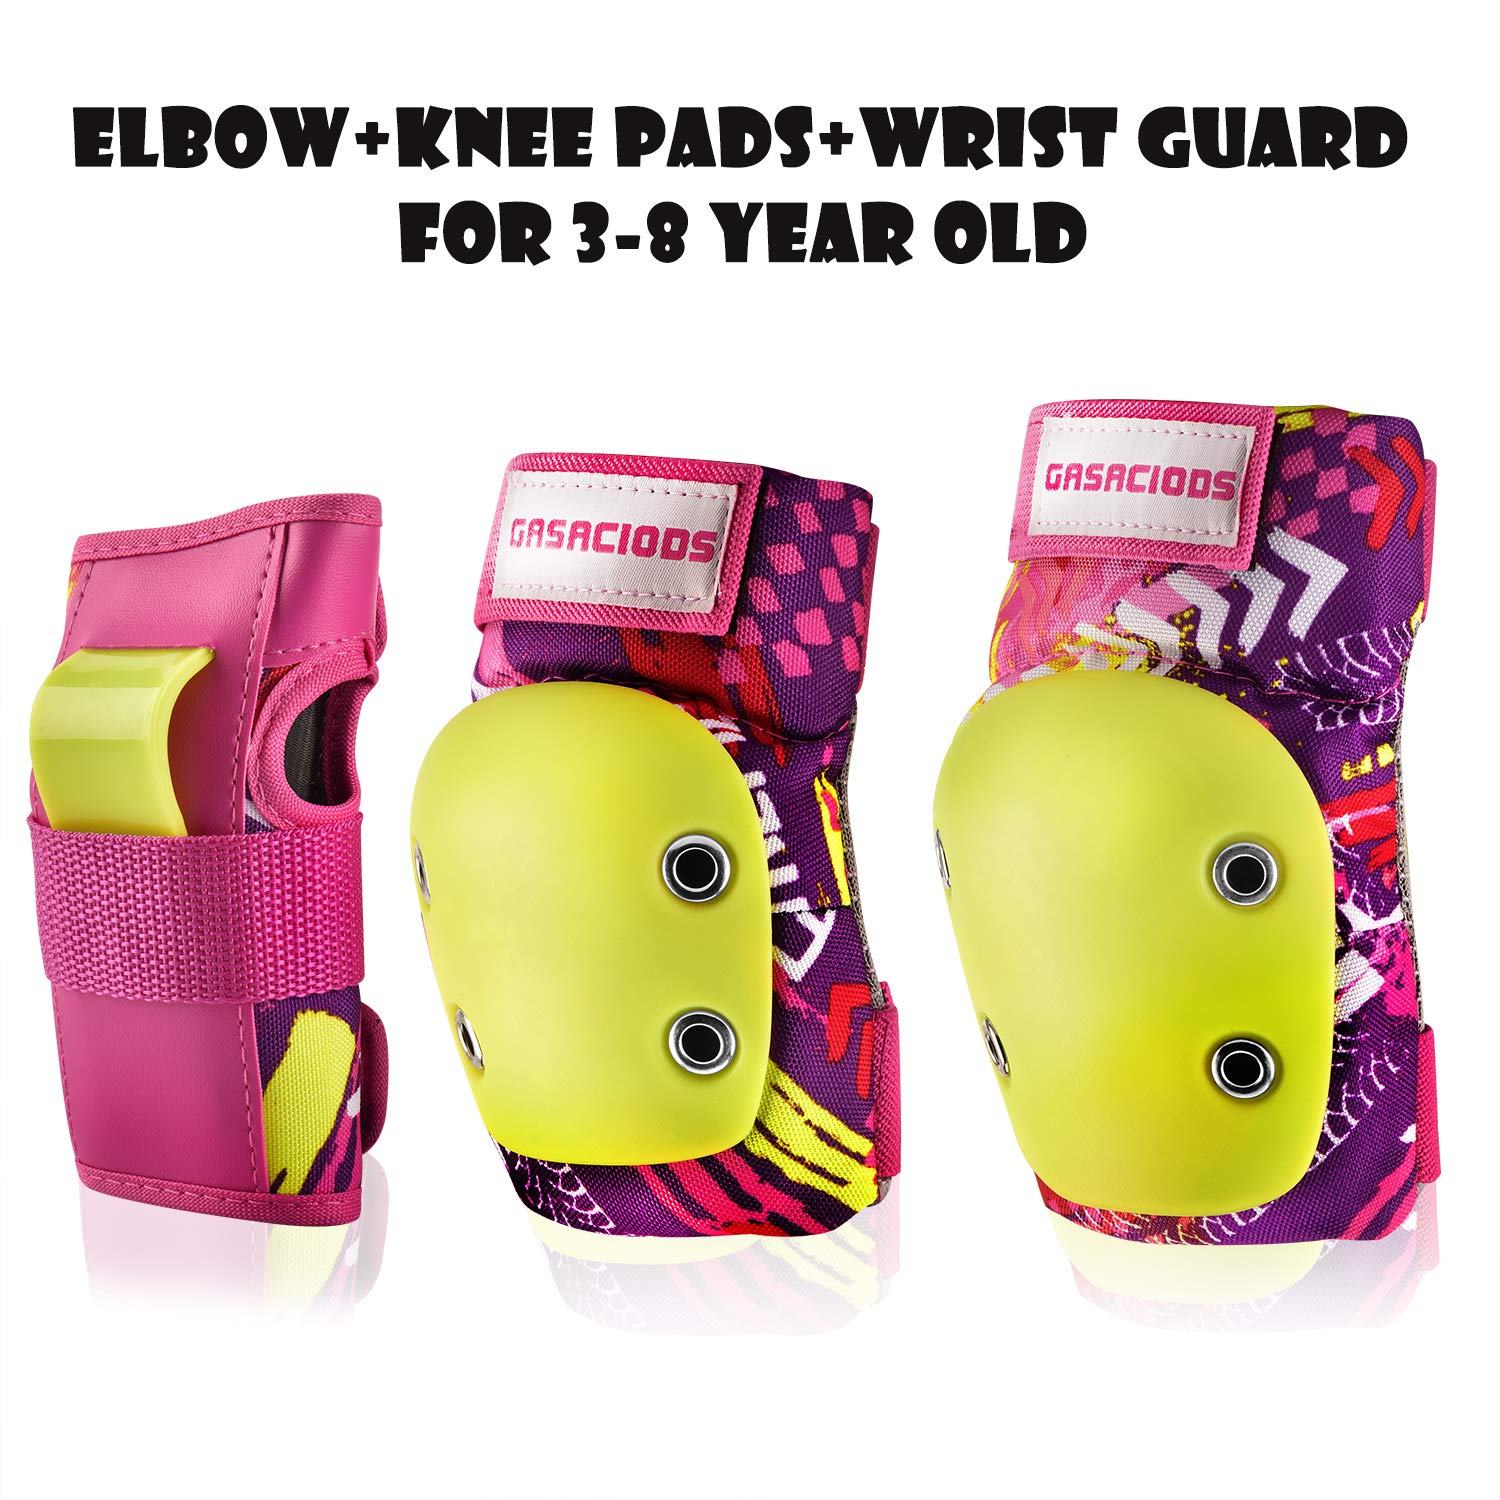 GASACIODS Kids/Child Sports Protective Gear, Colorful Shell Fabric Thickened Unzerbrechlich Design,Knee Pads Elbow Pads Wrist Guards Pads Set for Skateboarding Inline Roller Skating Cycling Bike by GASACIODS